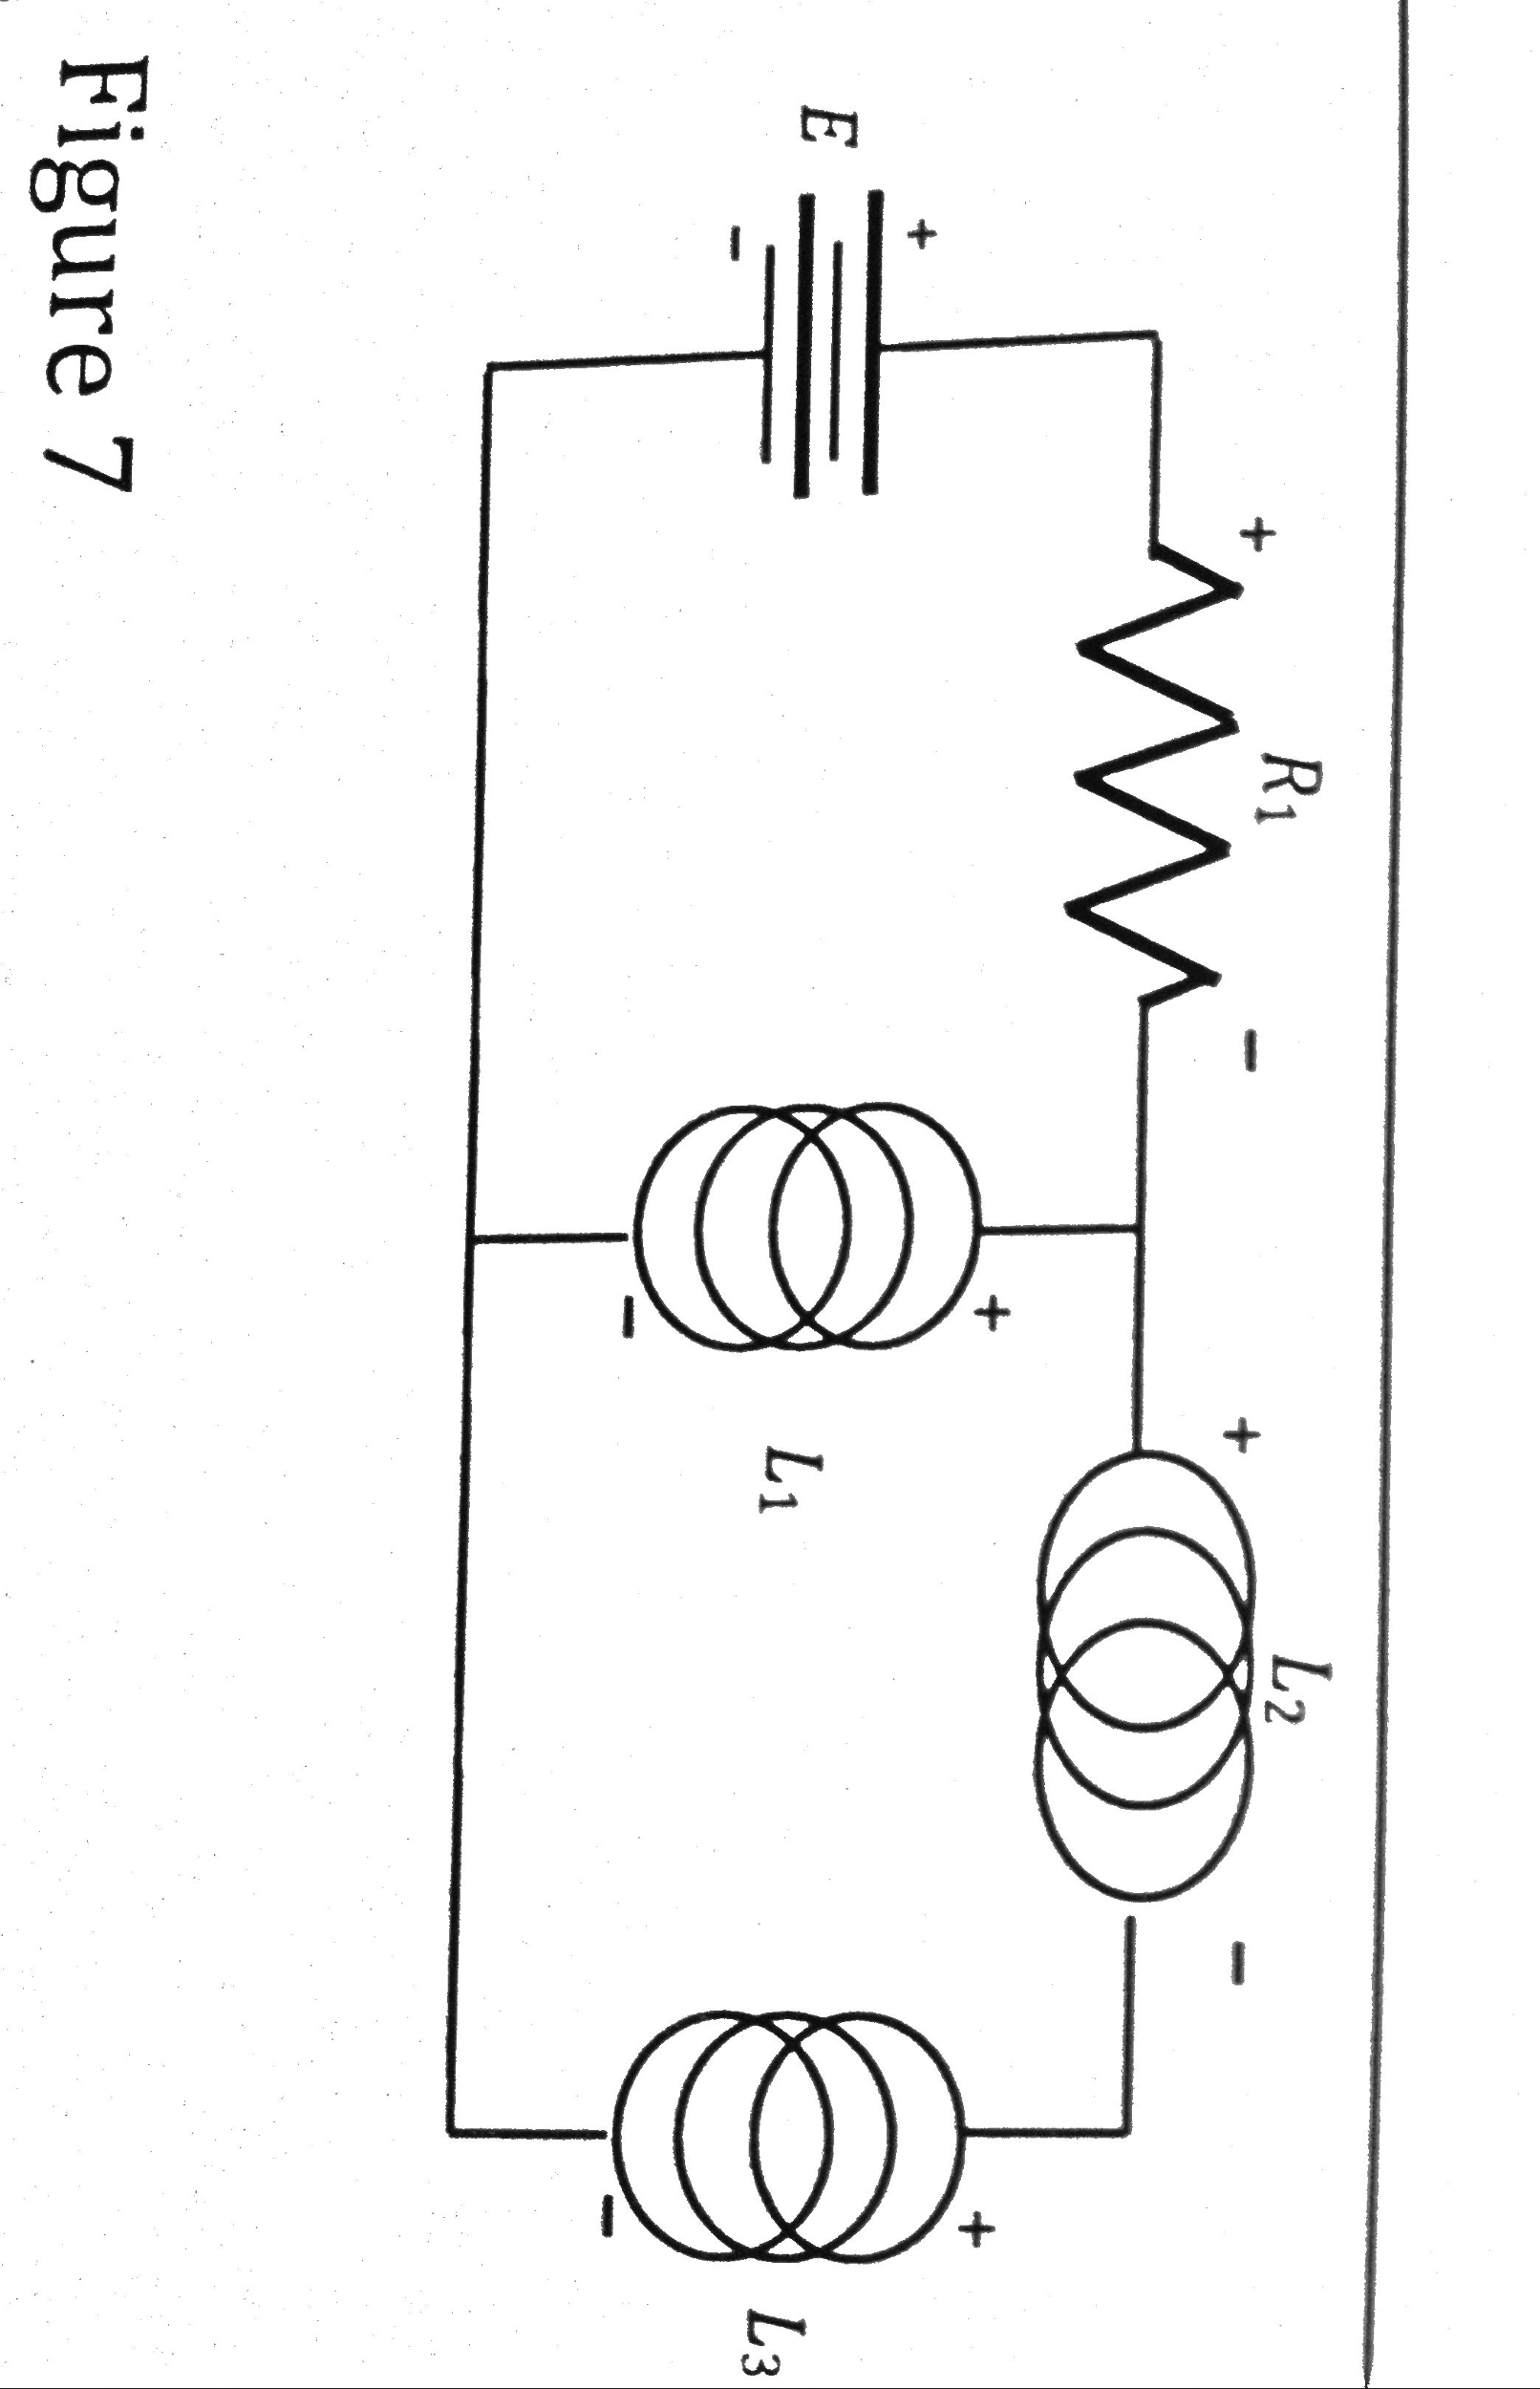 In figure 7, E = +10V, R1 = 2 Ohms, L1 = 2H, and L